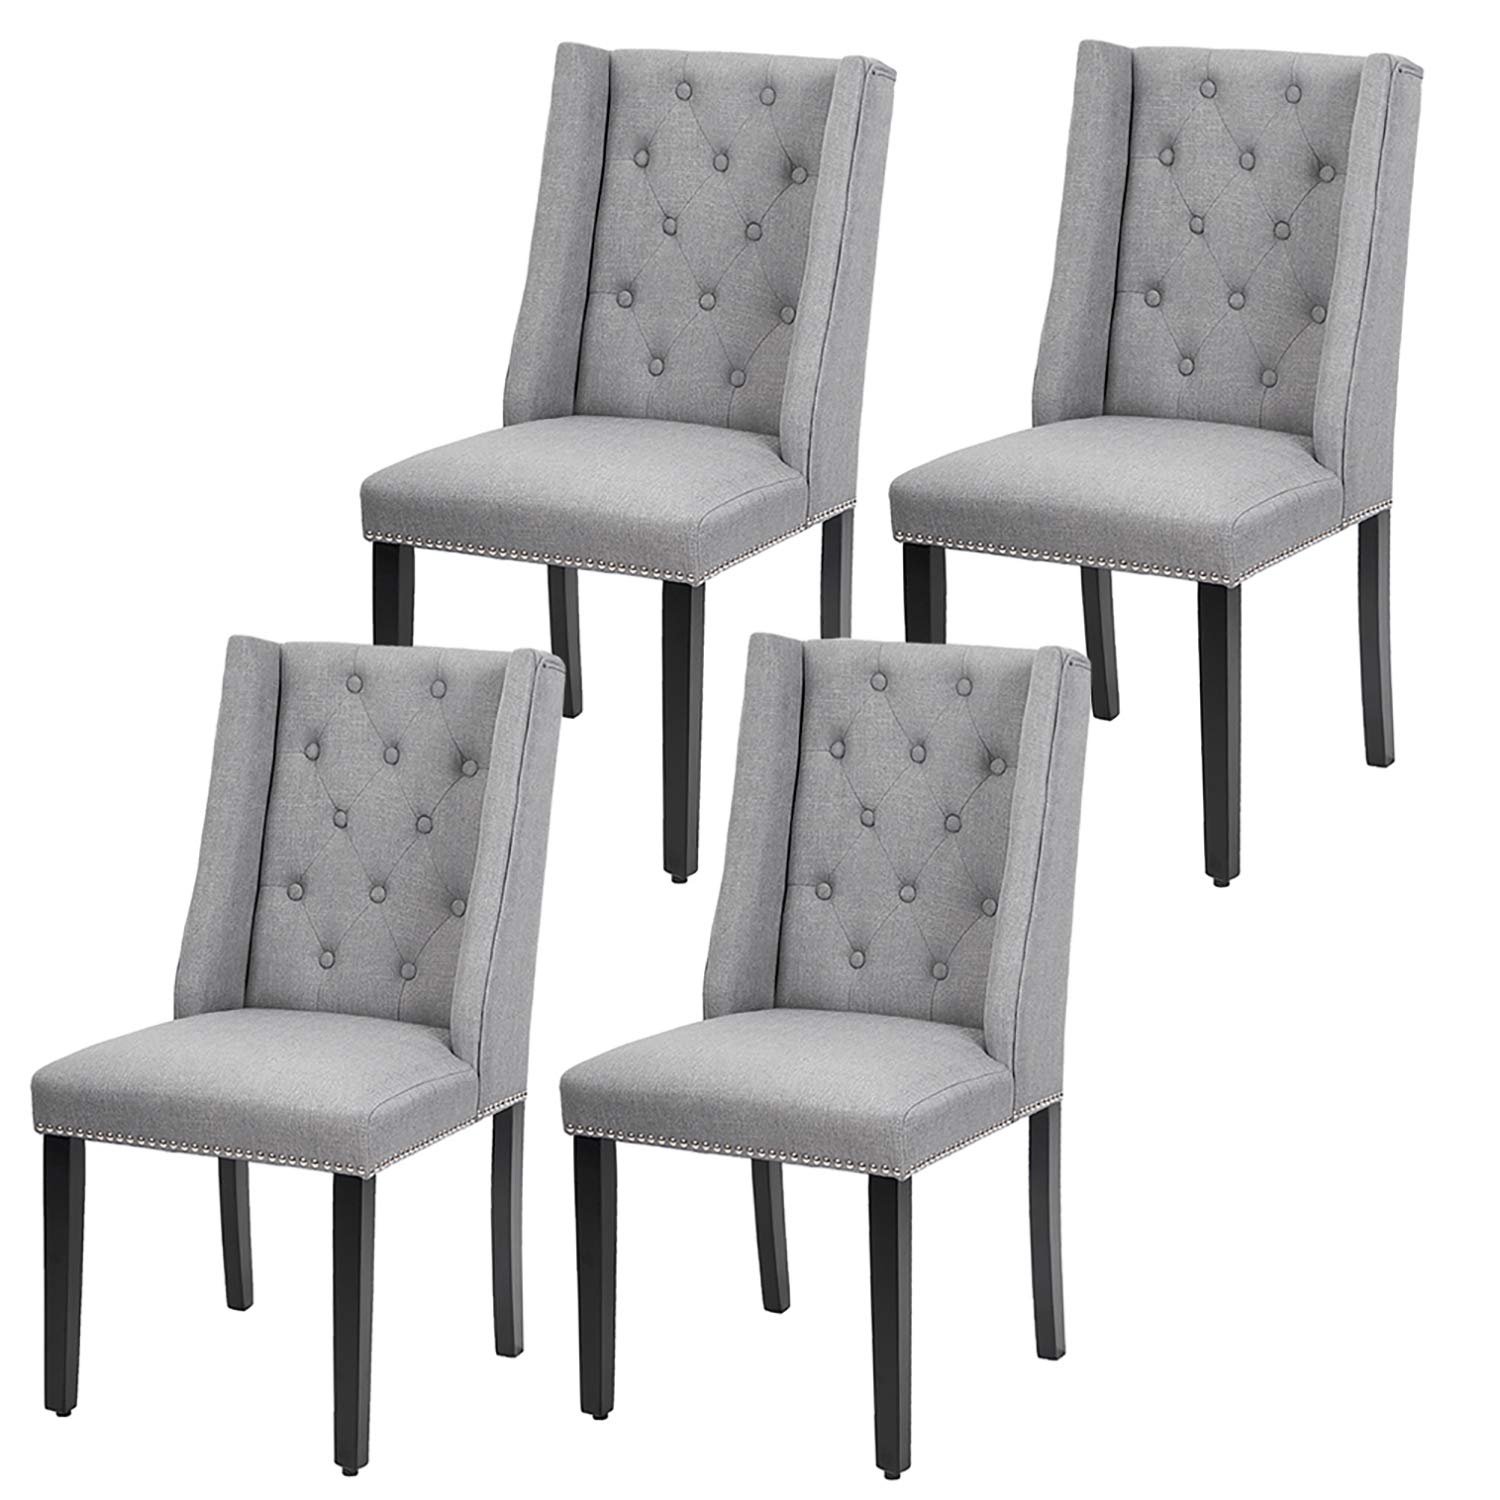 Dining Room Chairs Kitchen Chairs Parsons Dining Chairs (Set of 4) Side Chair for Restaurant Home Kitchen Living Room by FDW (Image #2)